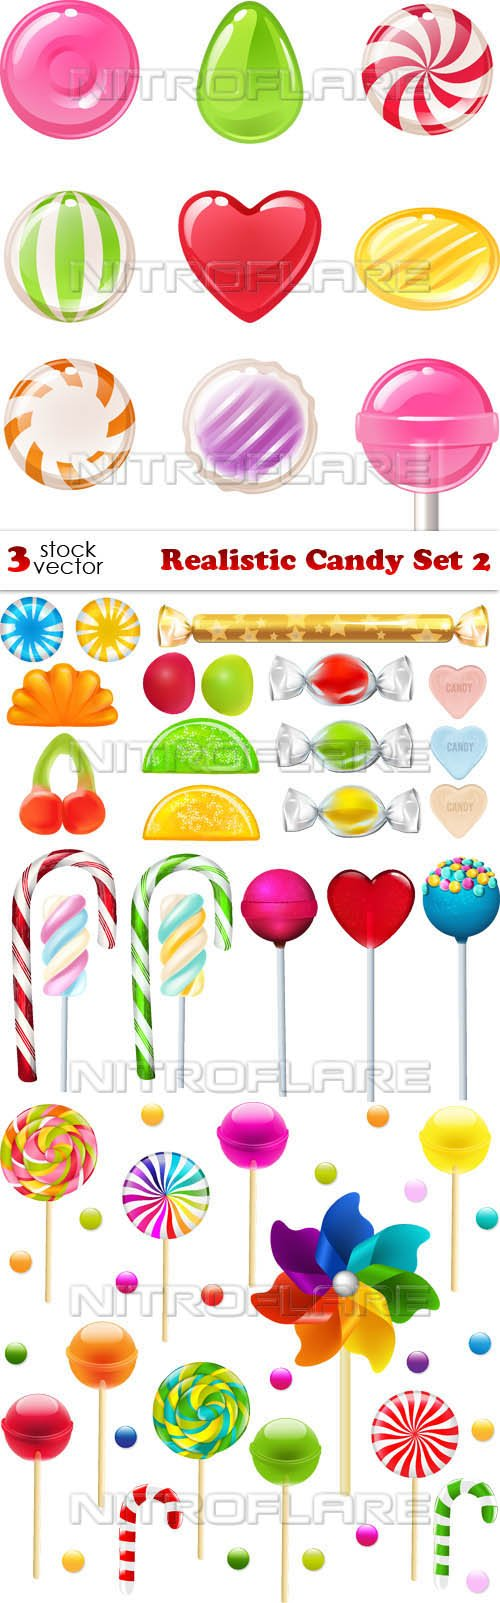 Vectors - Realistic Candy Set 2